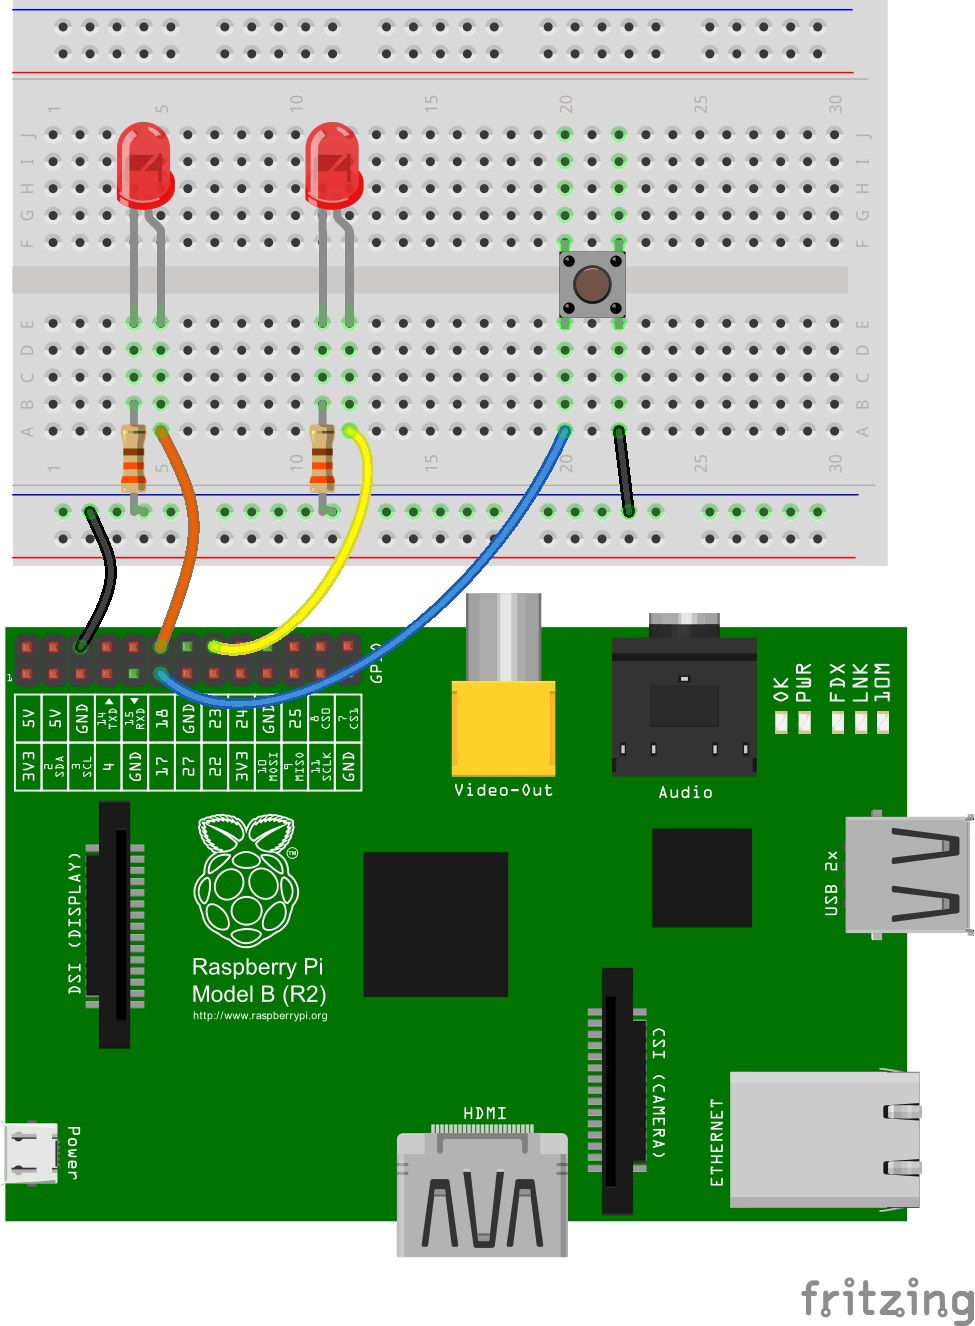 Raspberry Pi Relay Wiring Diagram Gpio Alt Text Connections To Original